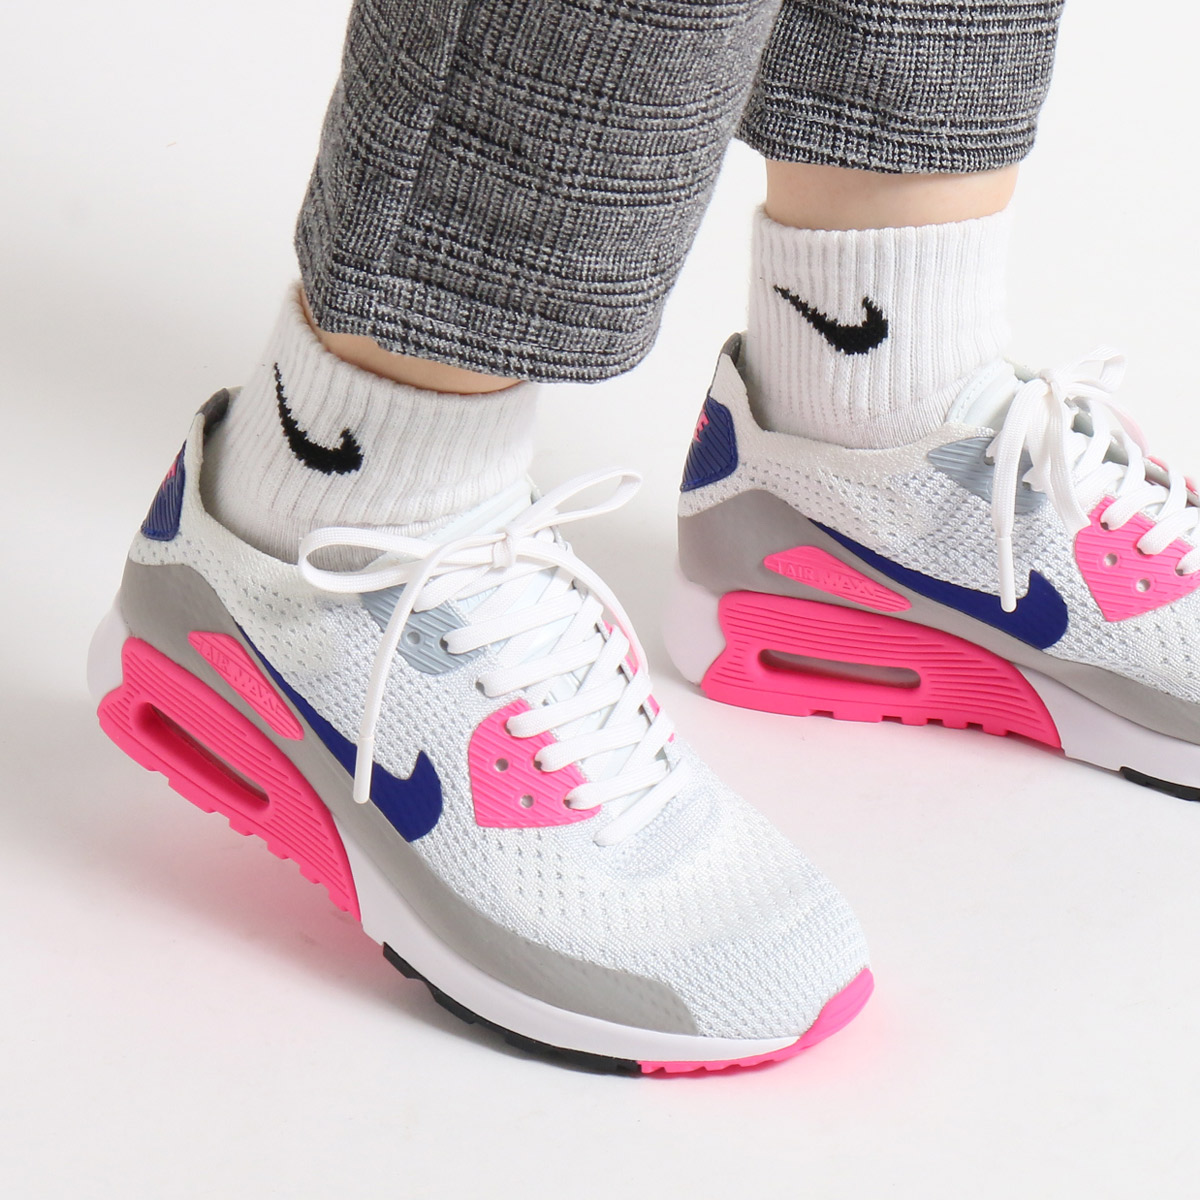 abaaf514040d NIKE W AIR MAX 90 ULTRA 2.0 FLYKNIT (Nike we Lady s Air Max 90 ultra 2.0 fly  knit) (WHITE CONCORD-LASER PINK-BLACK-MATTE SILVER-PURE PLATINUM) 17SP-S